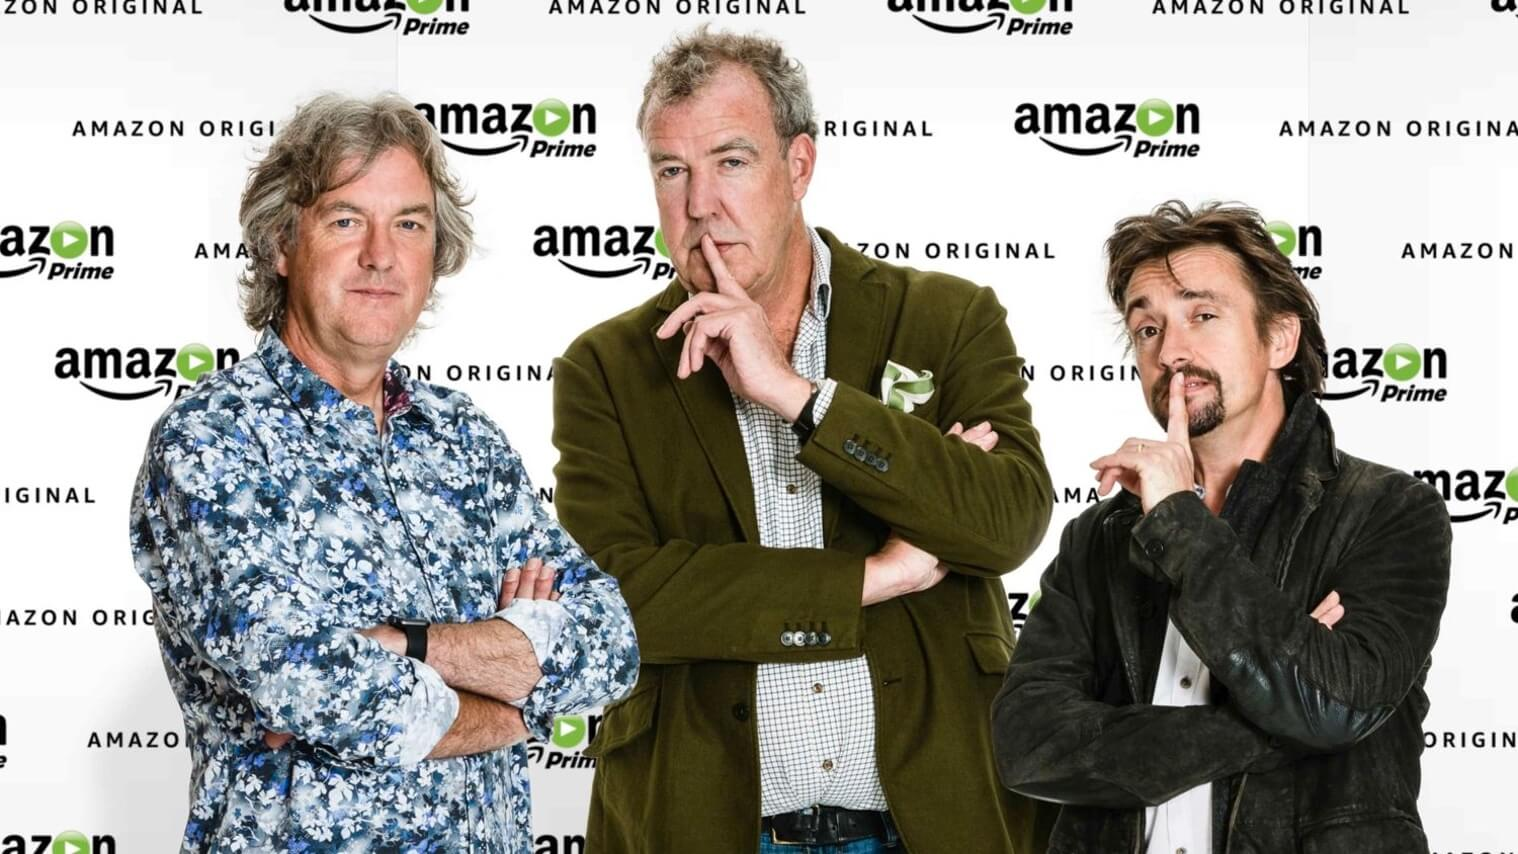 The Grand Tour is Clarkson, Hammond and May's new Amazon show